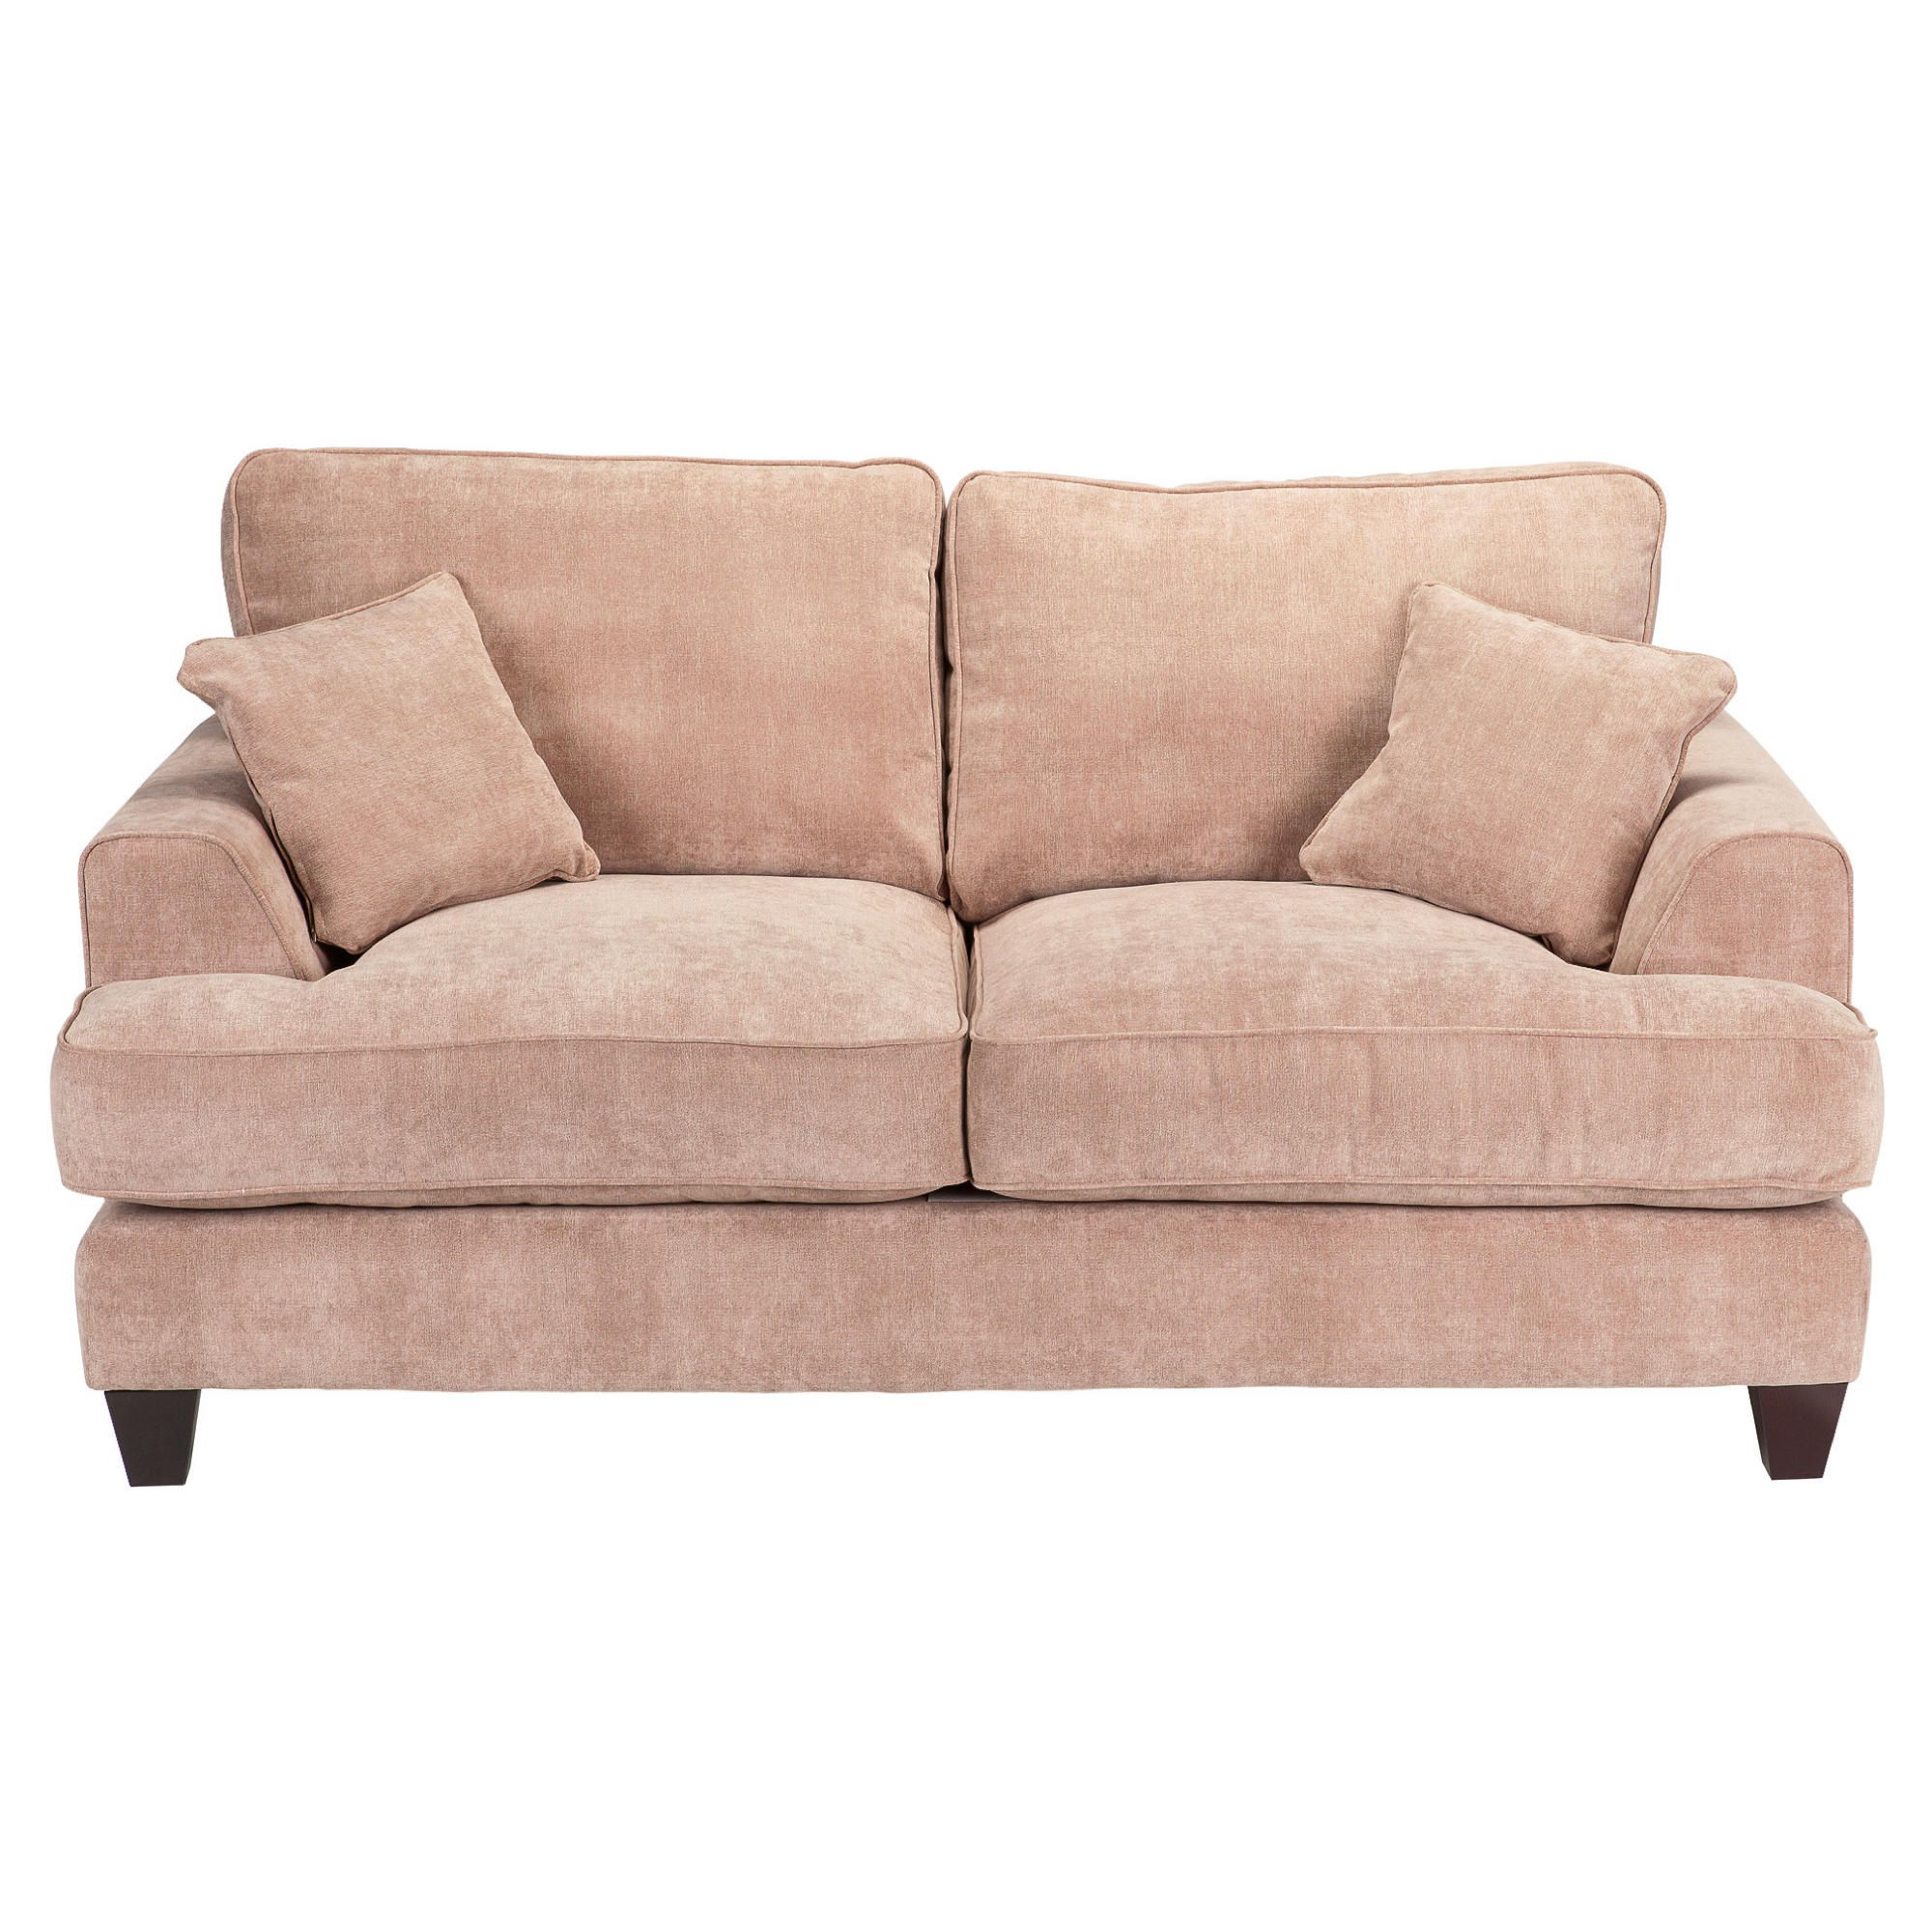 Kensington Fabric Small Sofa Biscuit at Tesco Direct